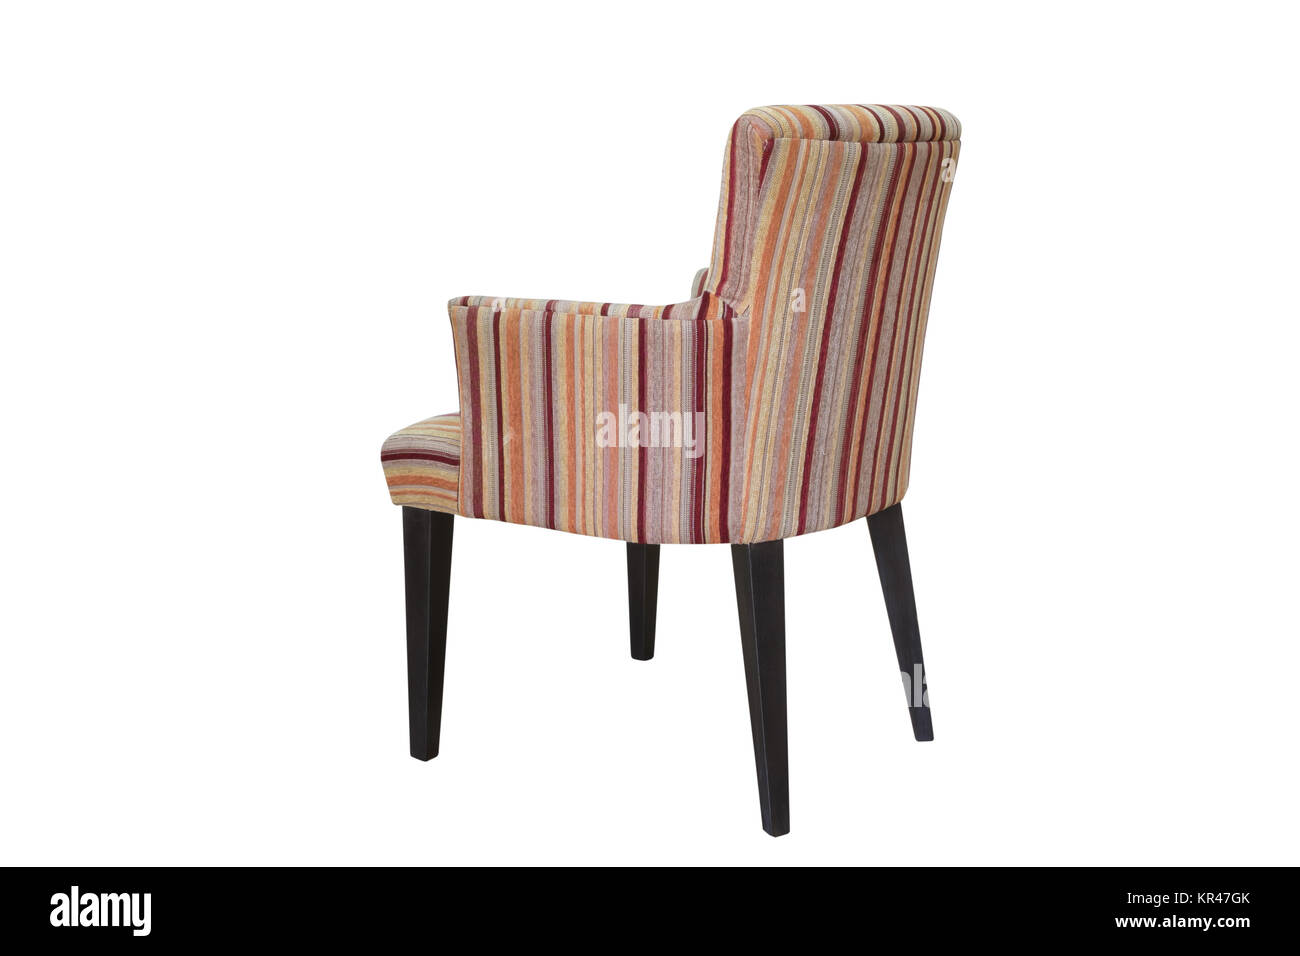 A studio shot of armchair isolated - Stock Image